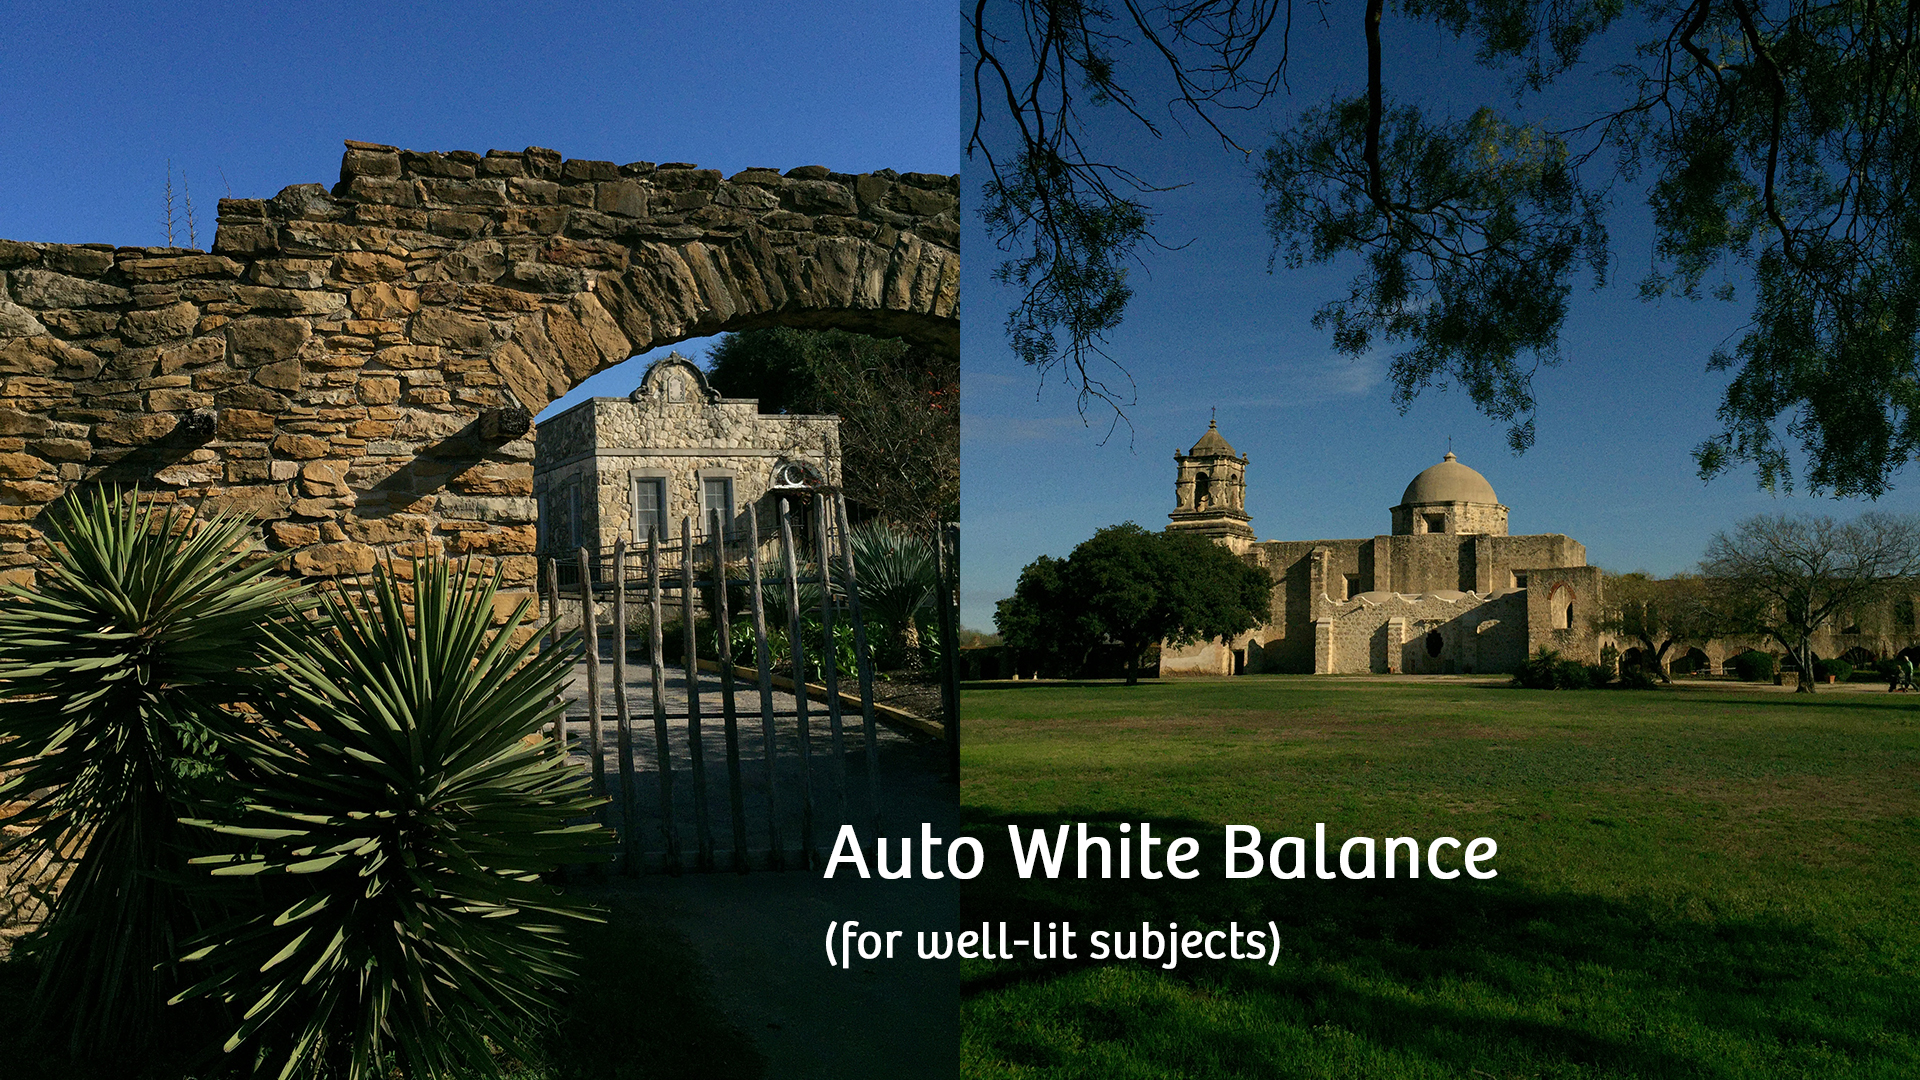 Making the Most of Your iPhone's Camera by Understanding the Concept of White Balance